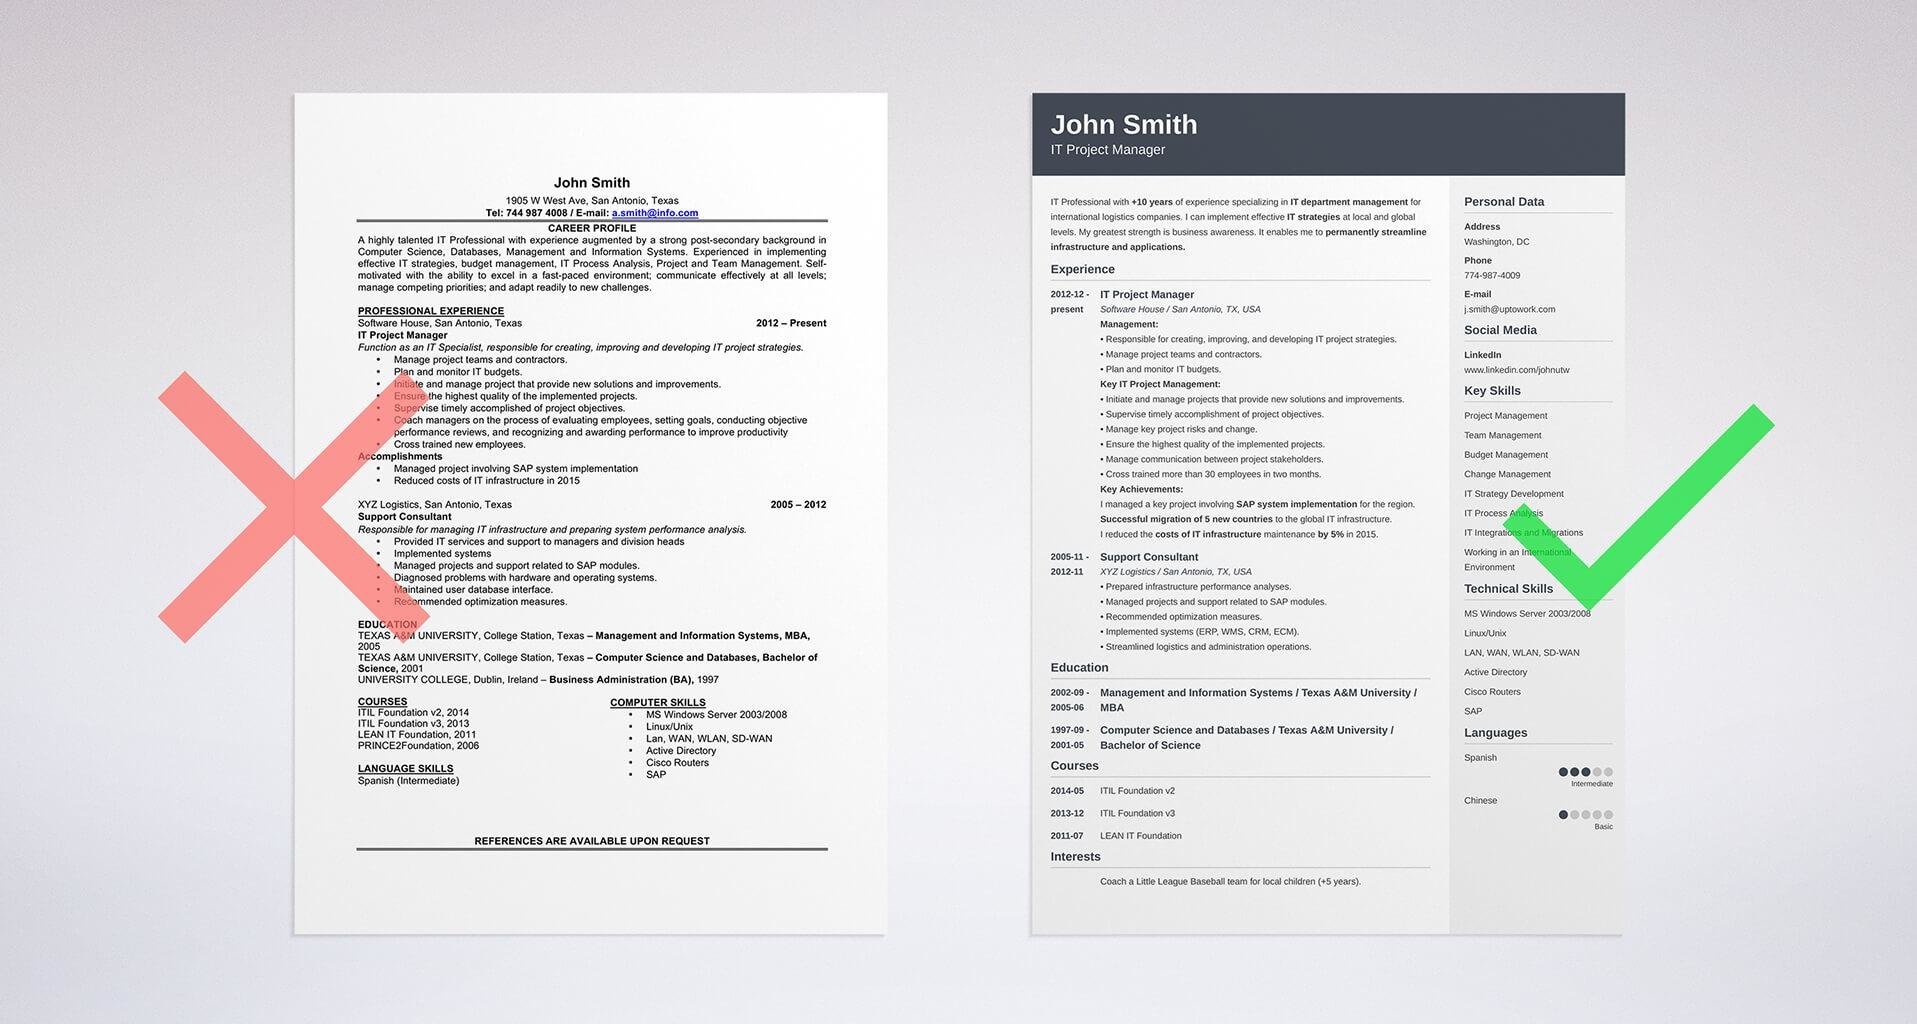 best resume format professional samples current styles example of formats creative event Resume Current Resume Styles Samples